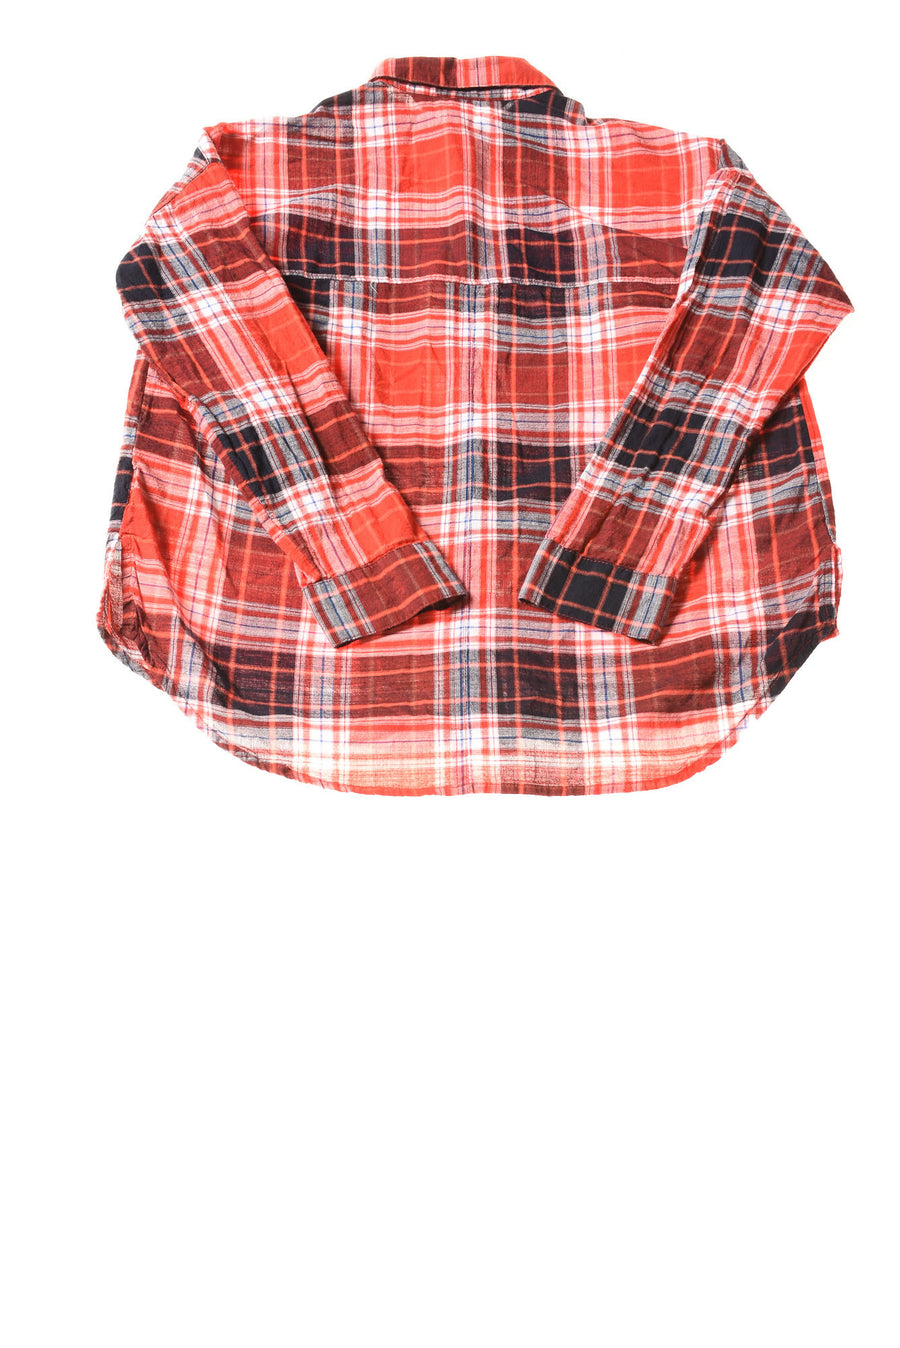 USED Old Navy Women's Petite Top Medium Red / Plaid